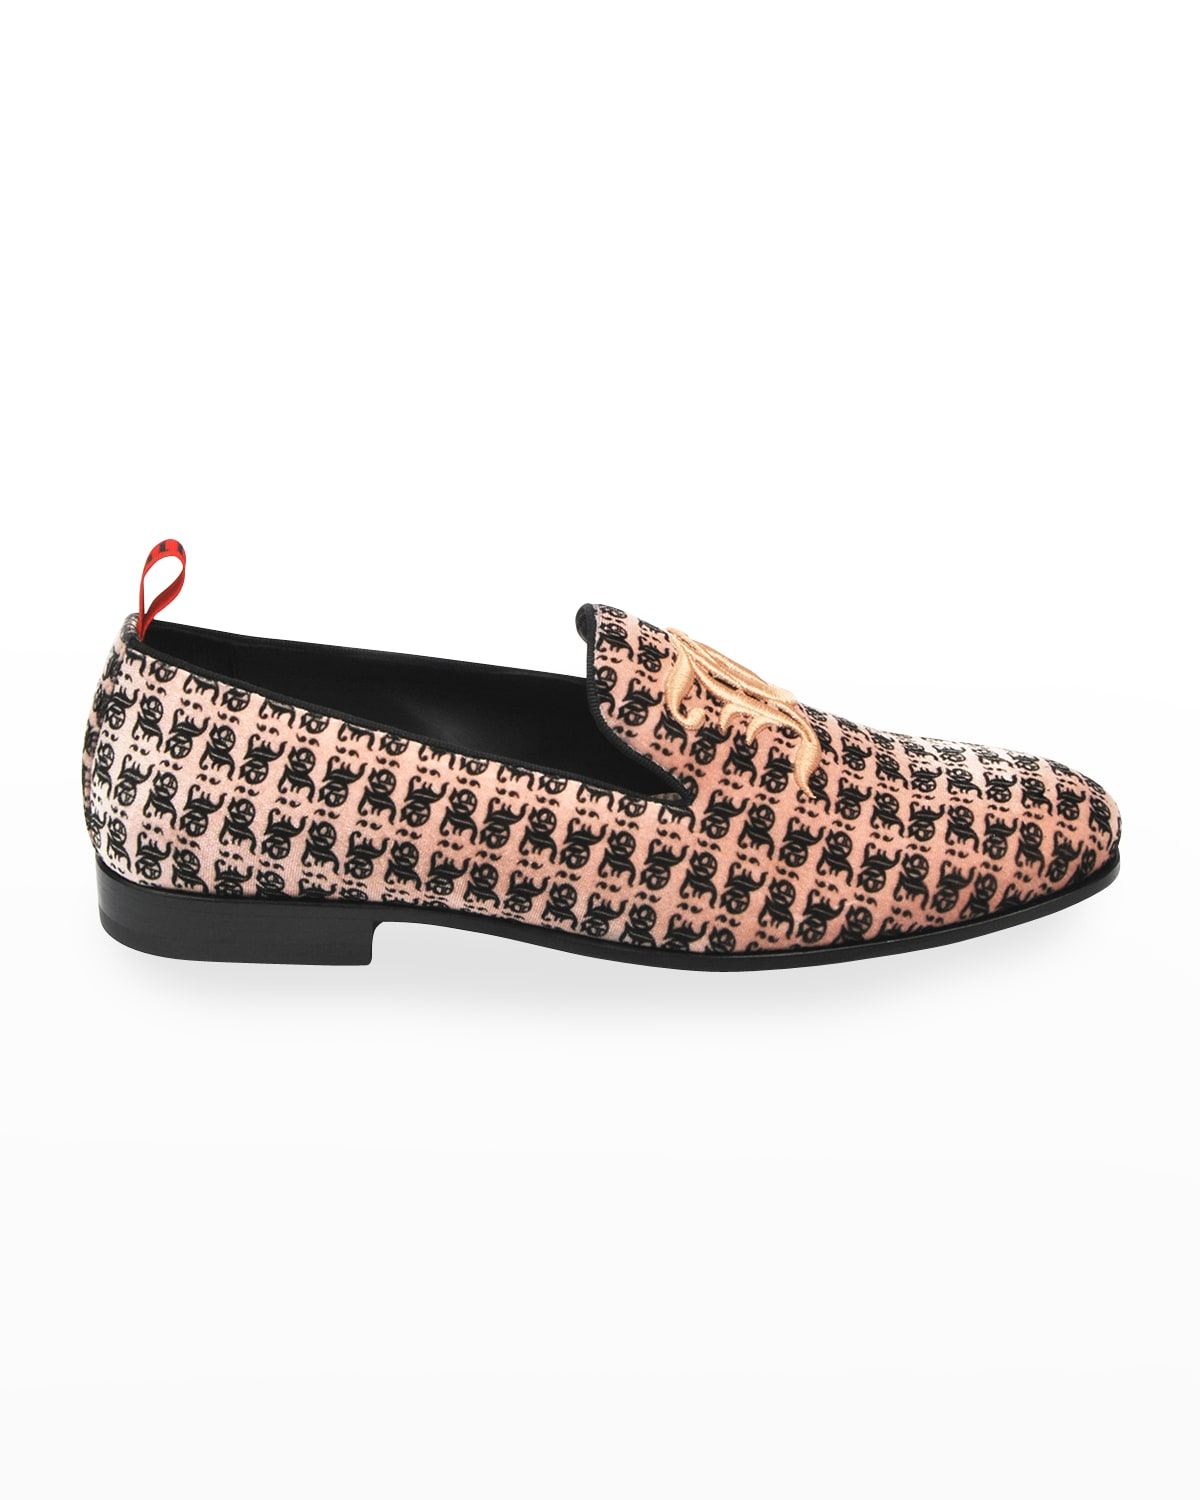 Men's Printed Loafers w/ Embroidery